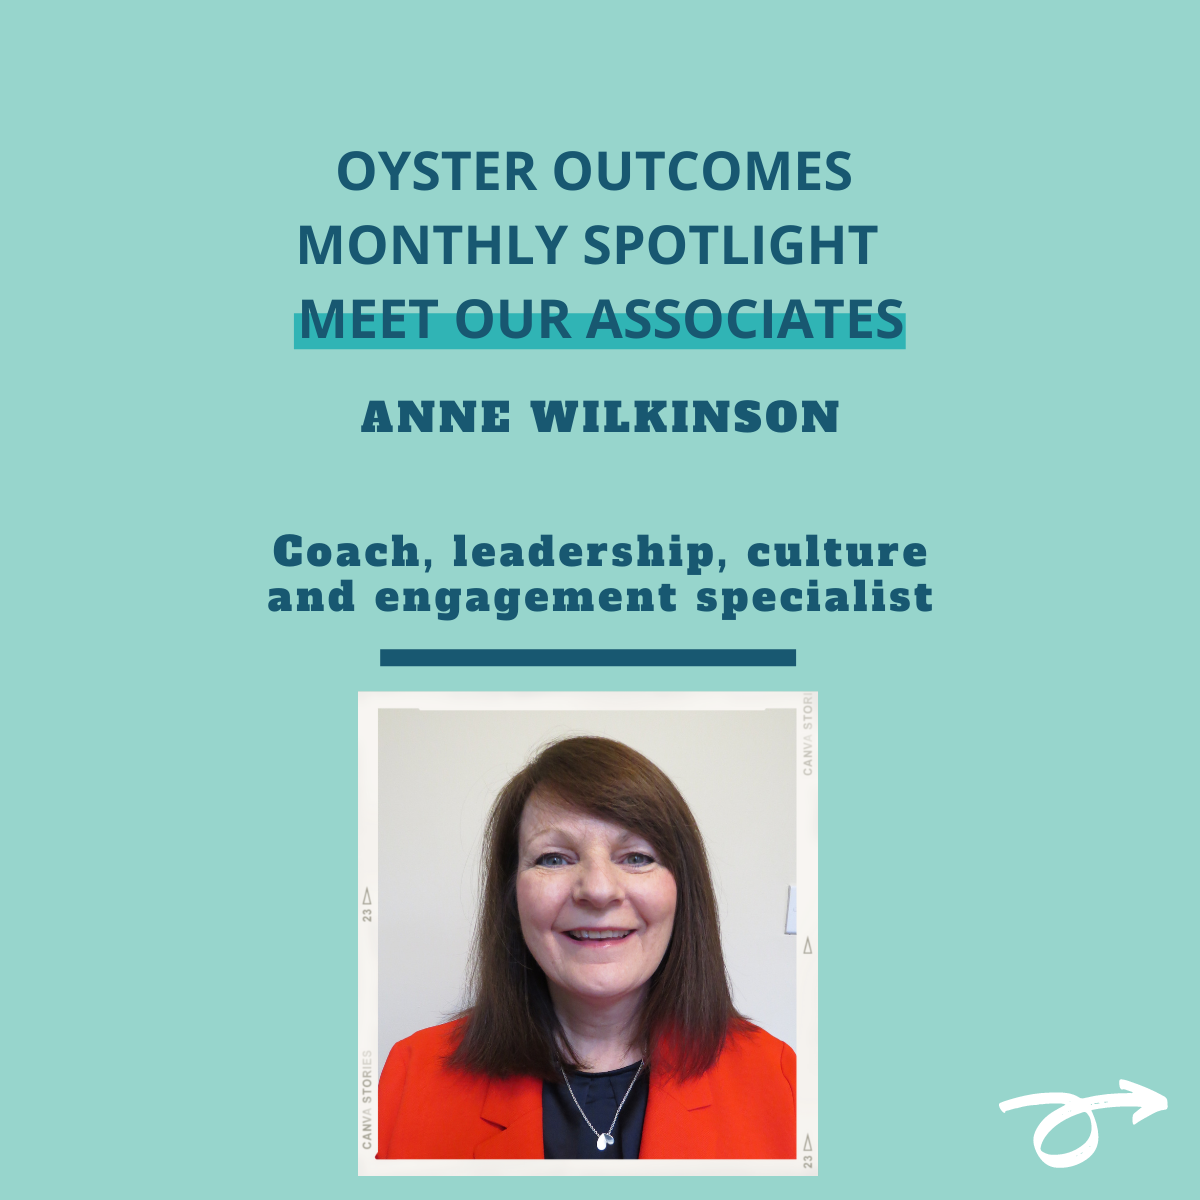 Introducing Anne Wilkinson to the Oyster Outcome associates